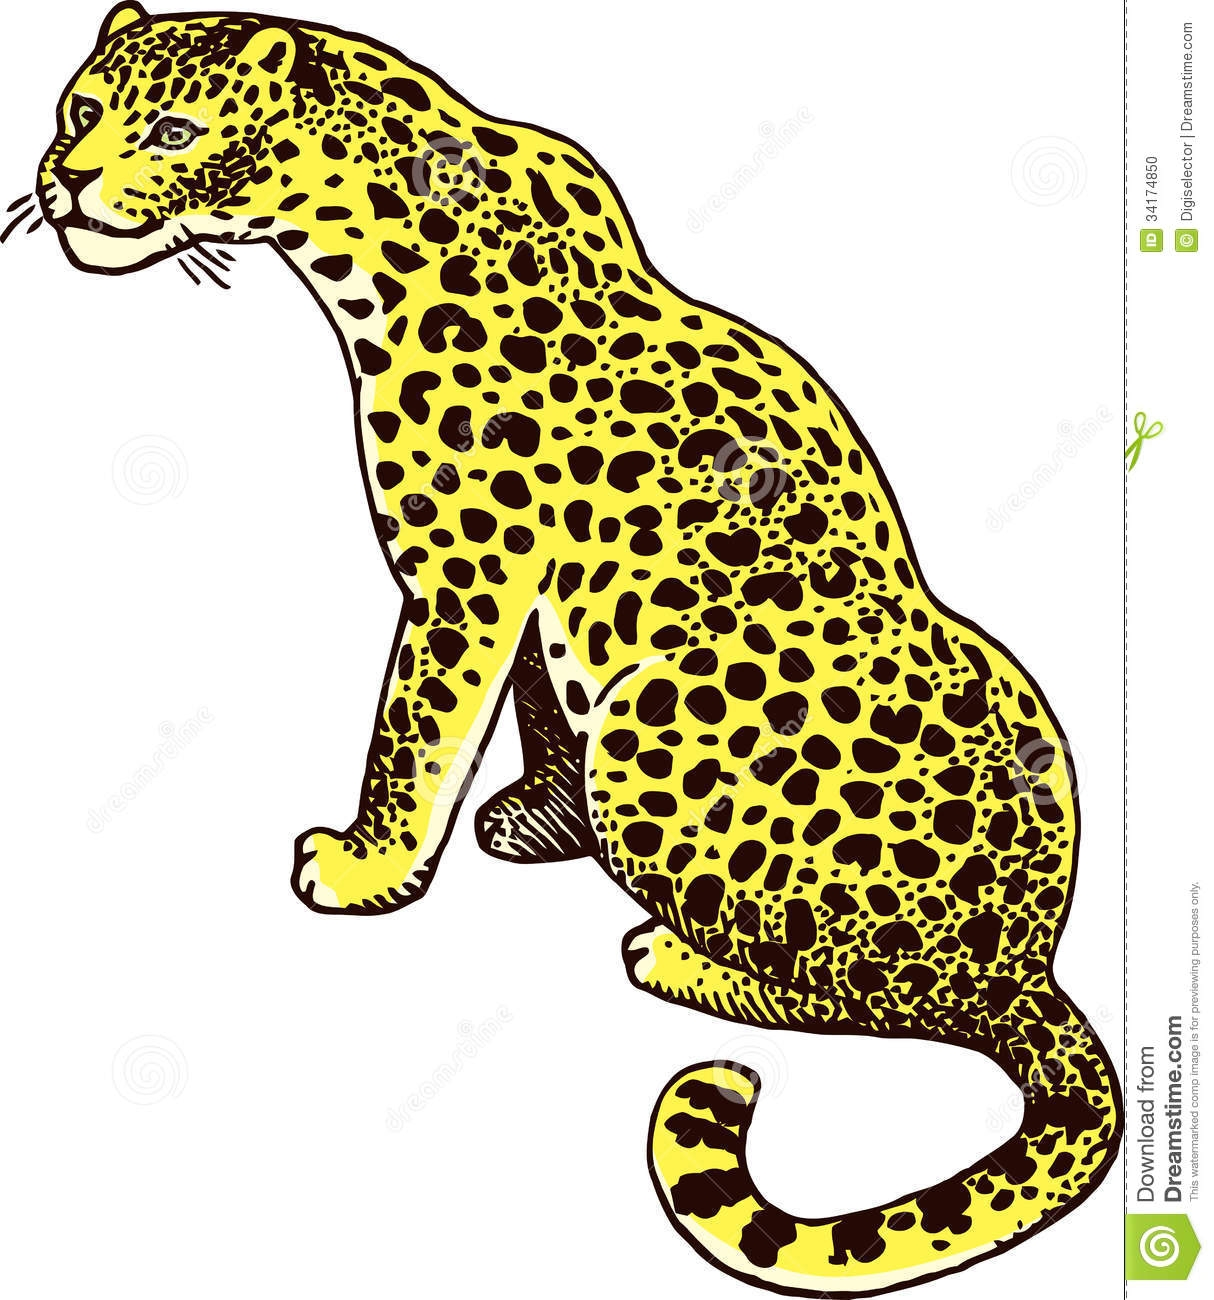 panther coloring pages - stock photo leopard panther wild cat vector illustration image